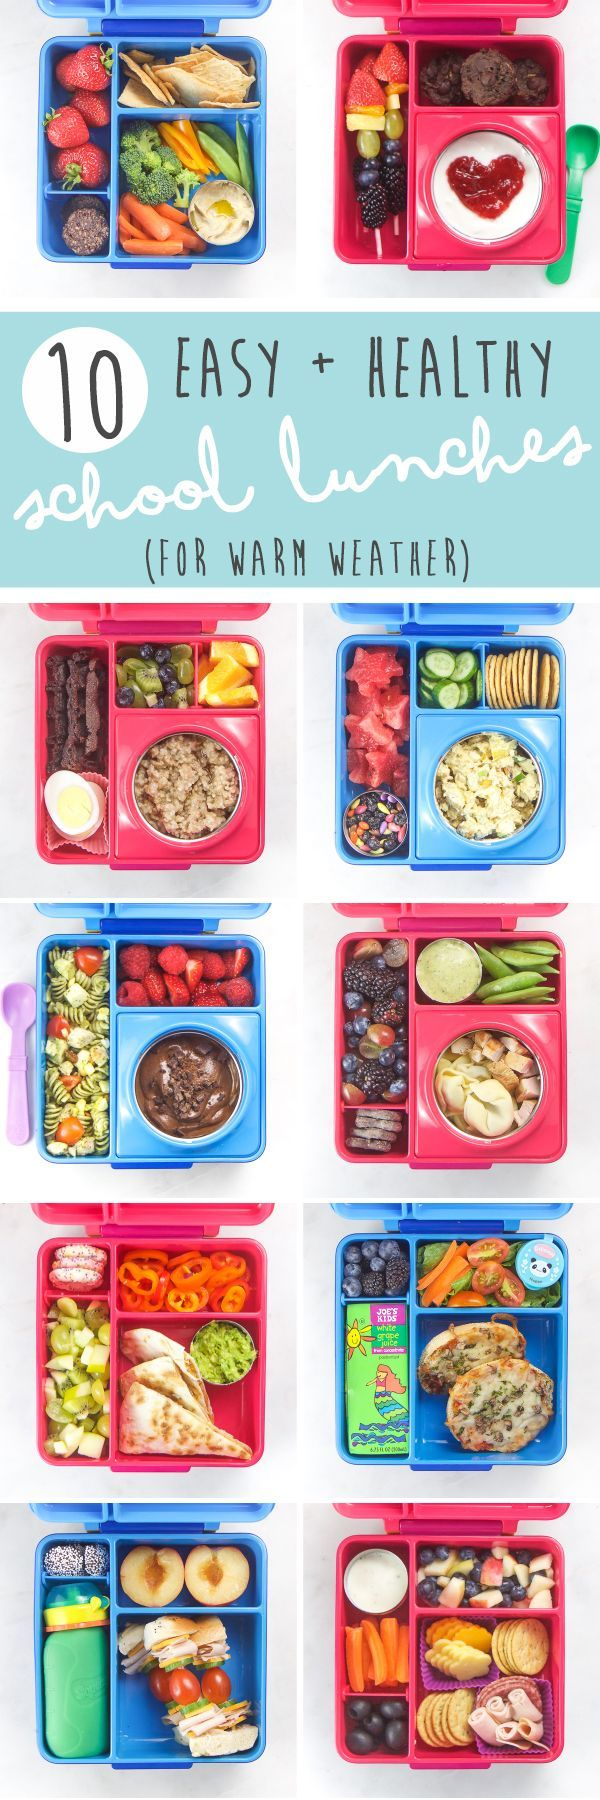 10 Easy + Healthy School Lunches for Warm Weather (no sandwiches!)